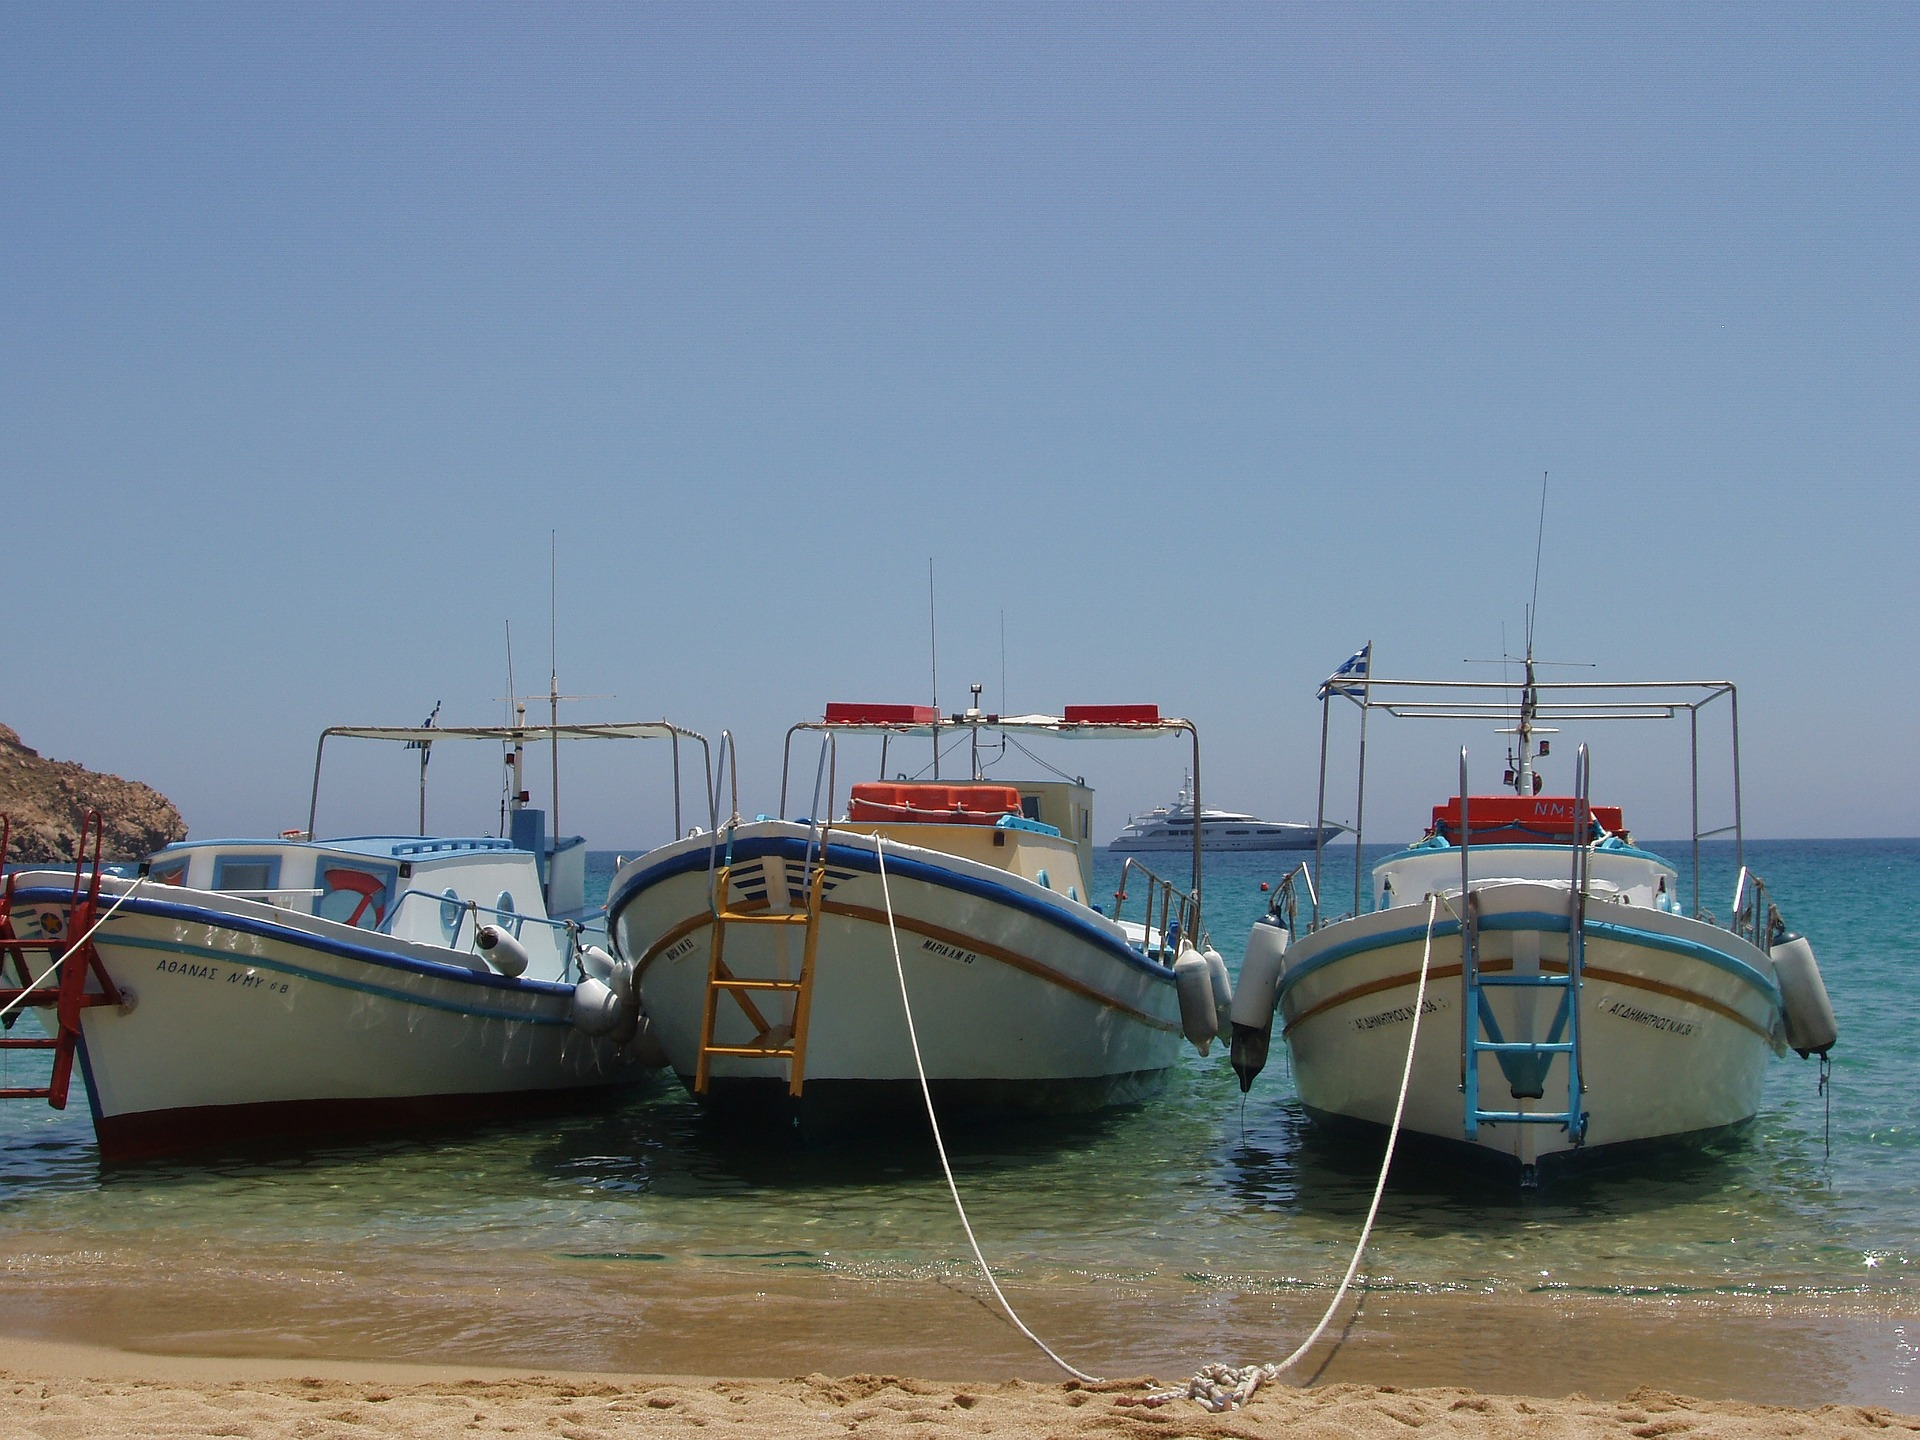 Boats docked on the beach in Mykonos